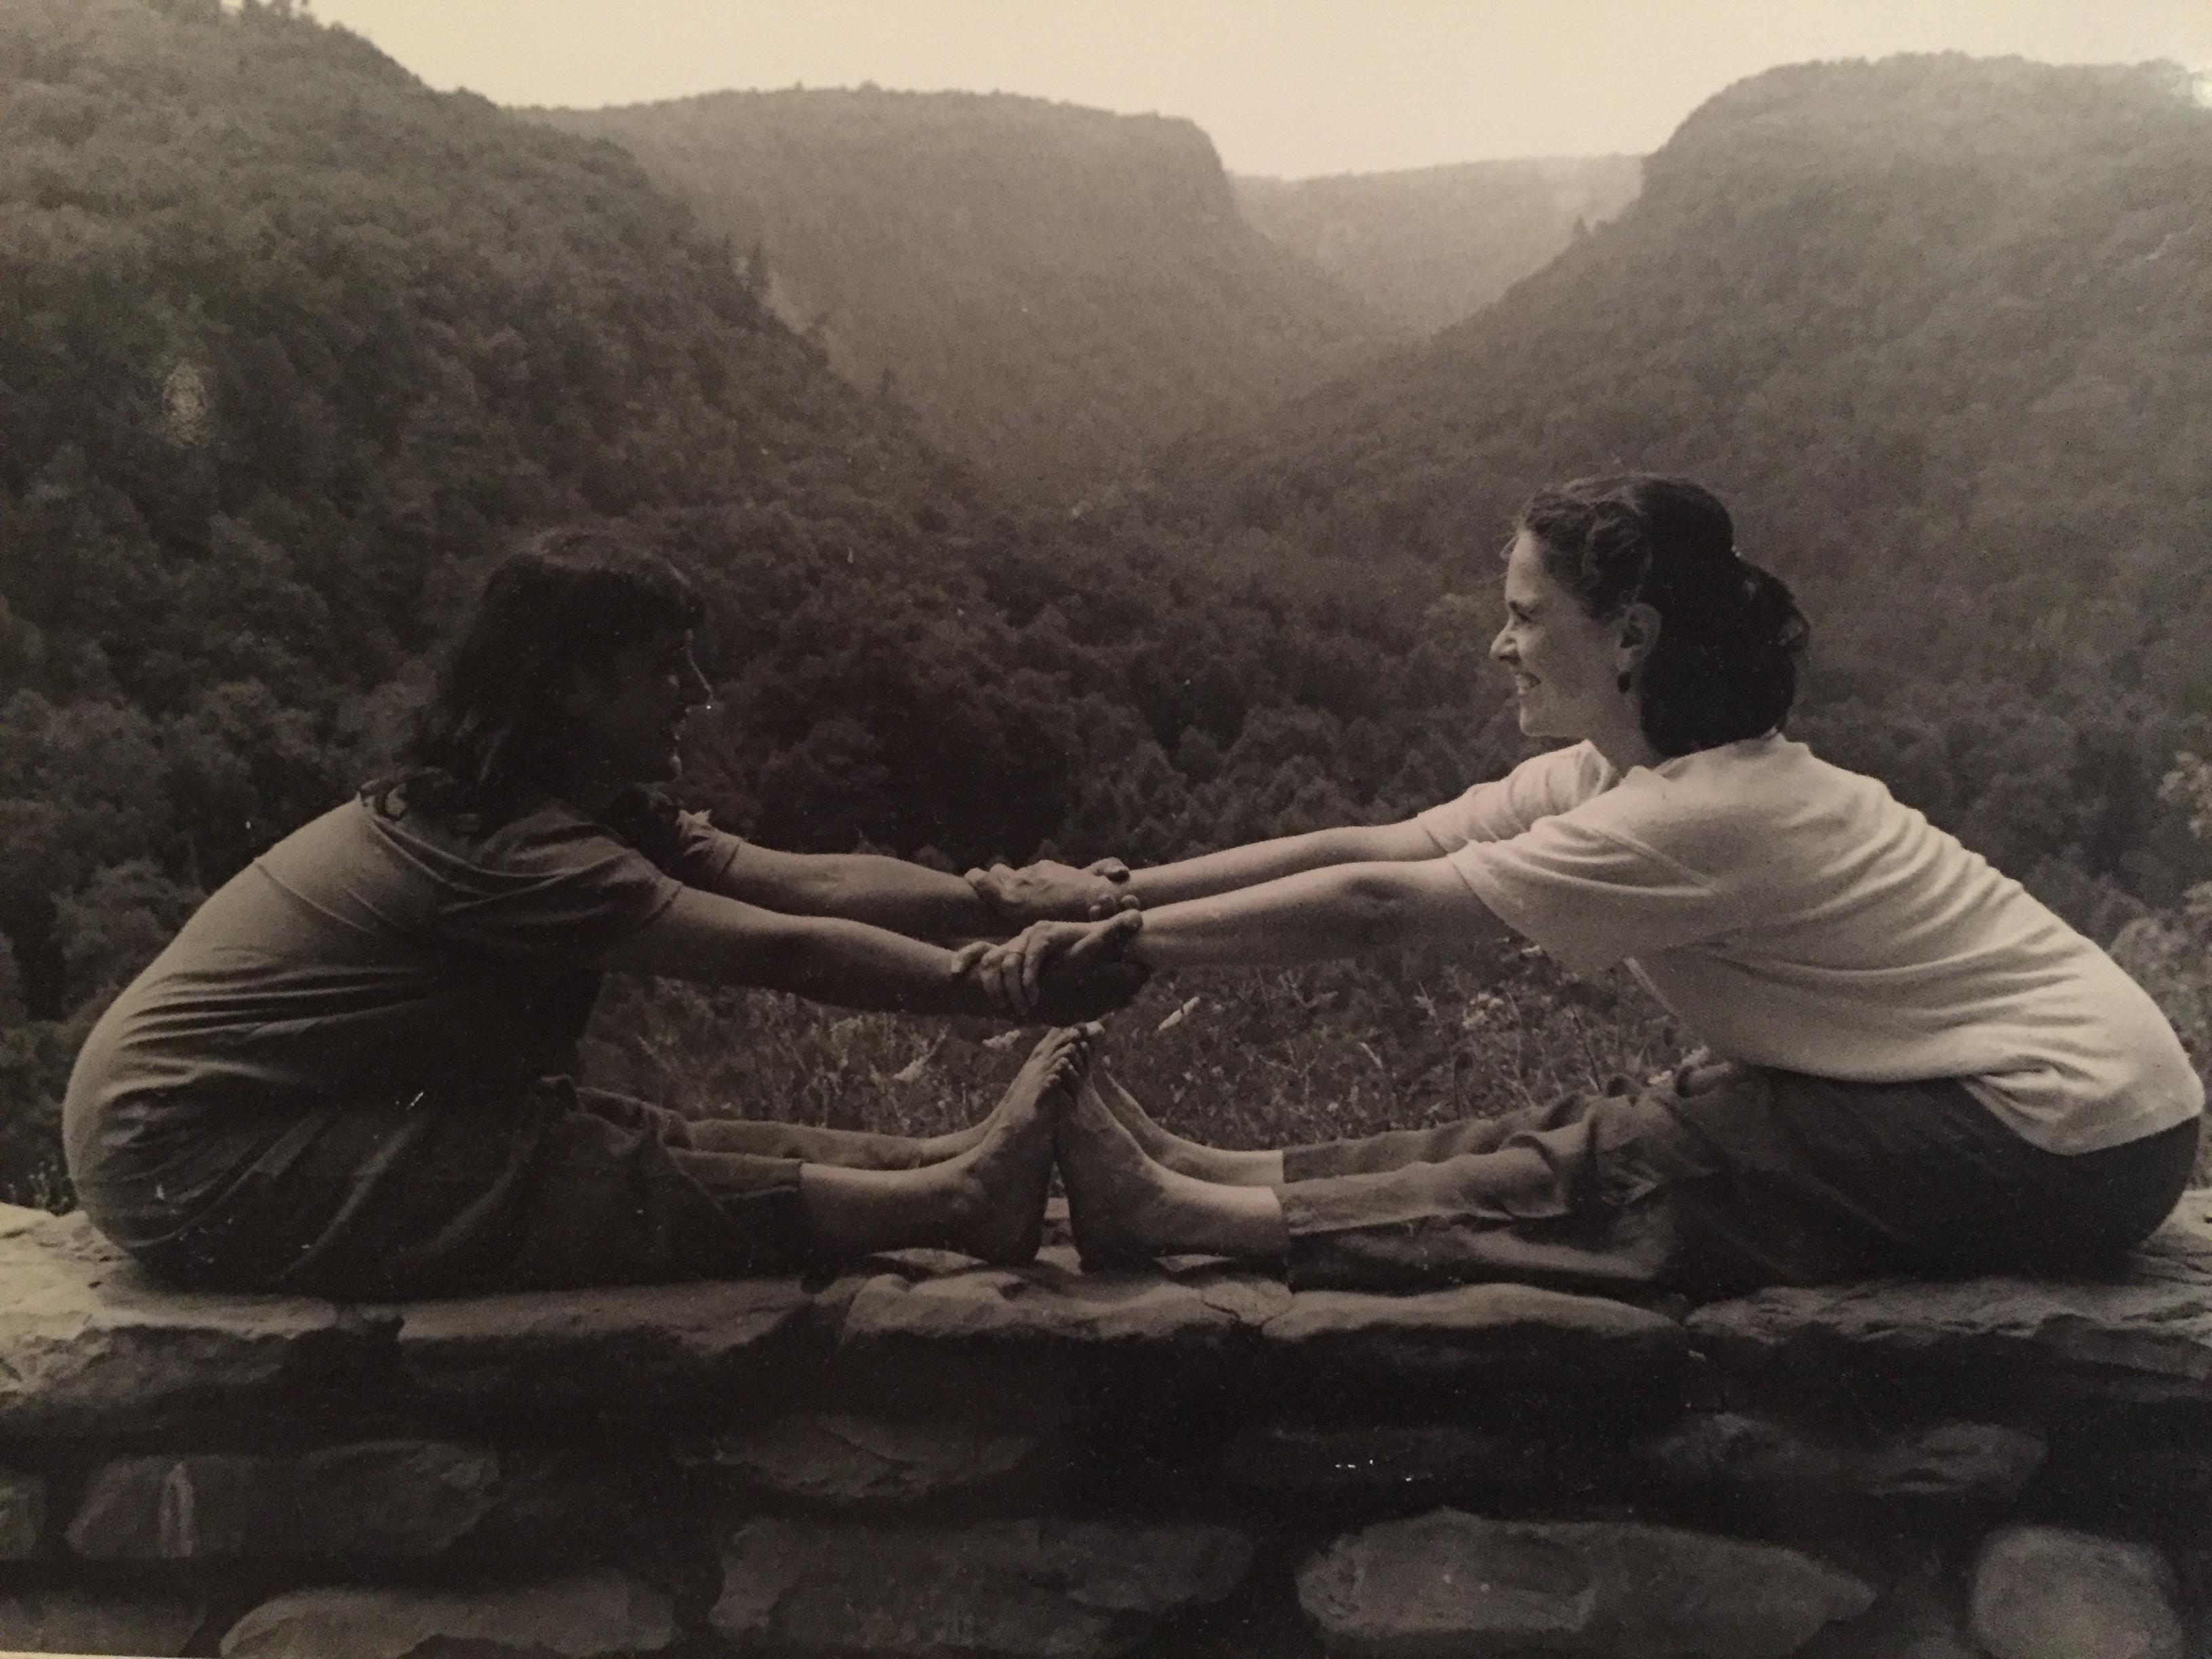 Angela Caplan and Jacki McCausland, Shakti Yoga Co-Founders - Letchworth State Park